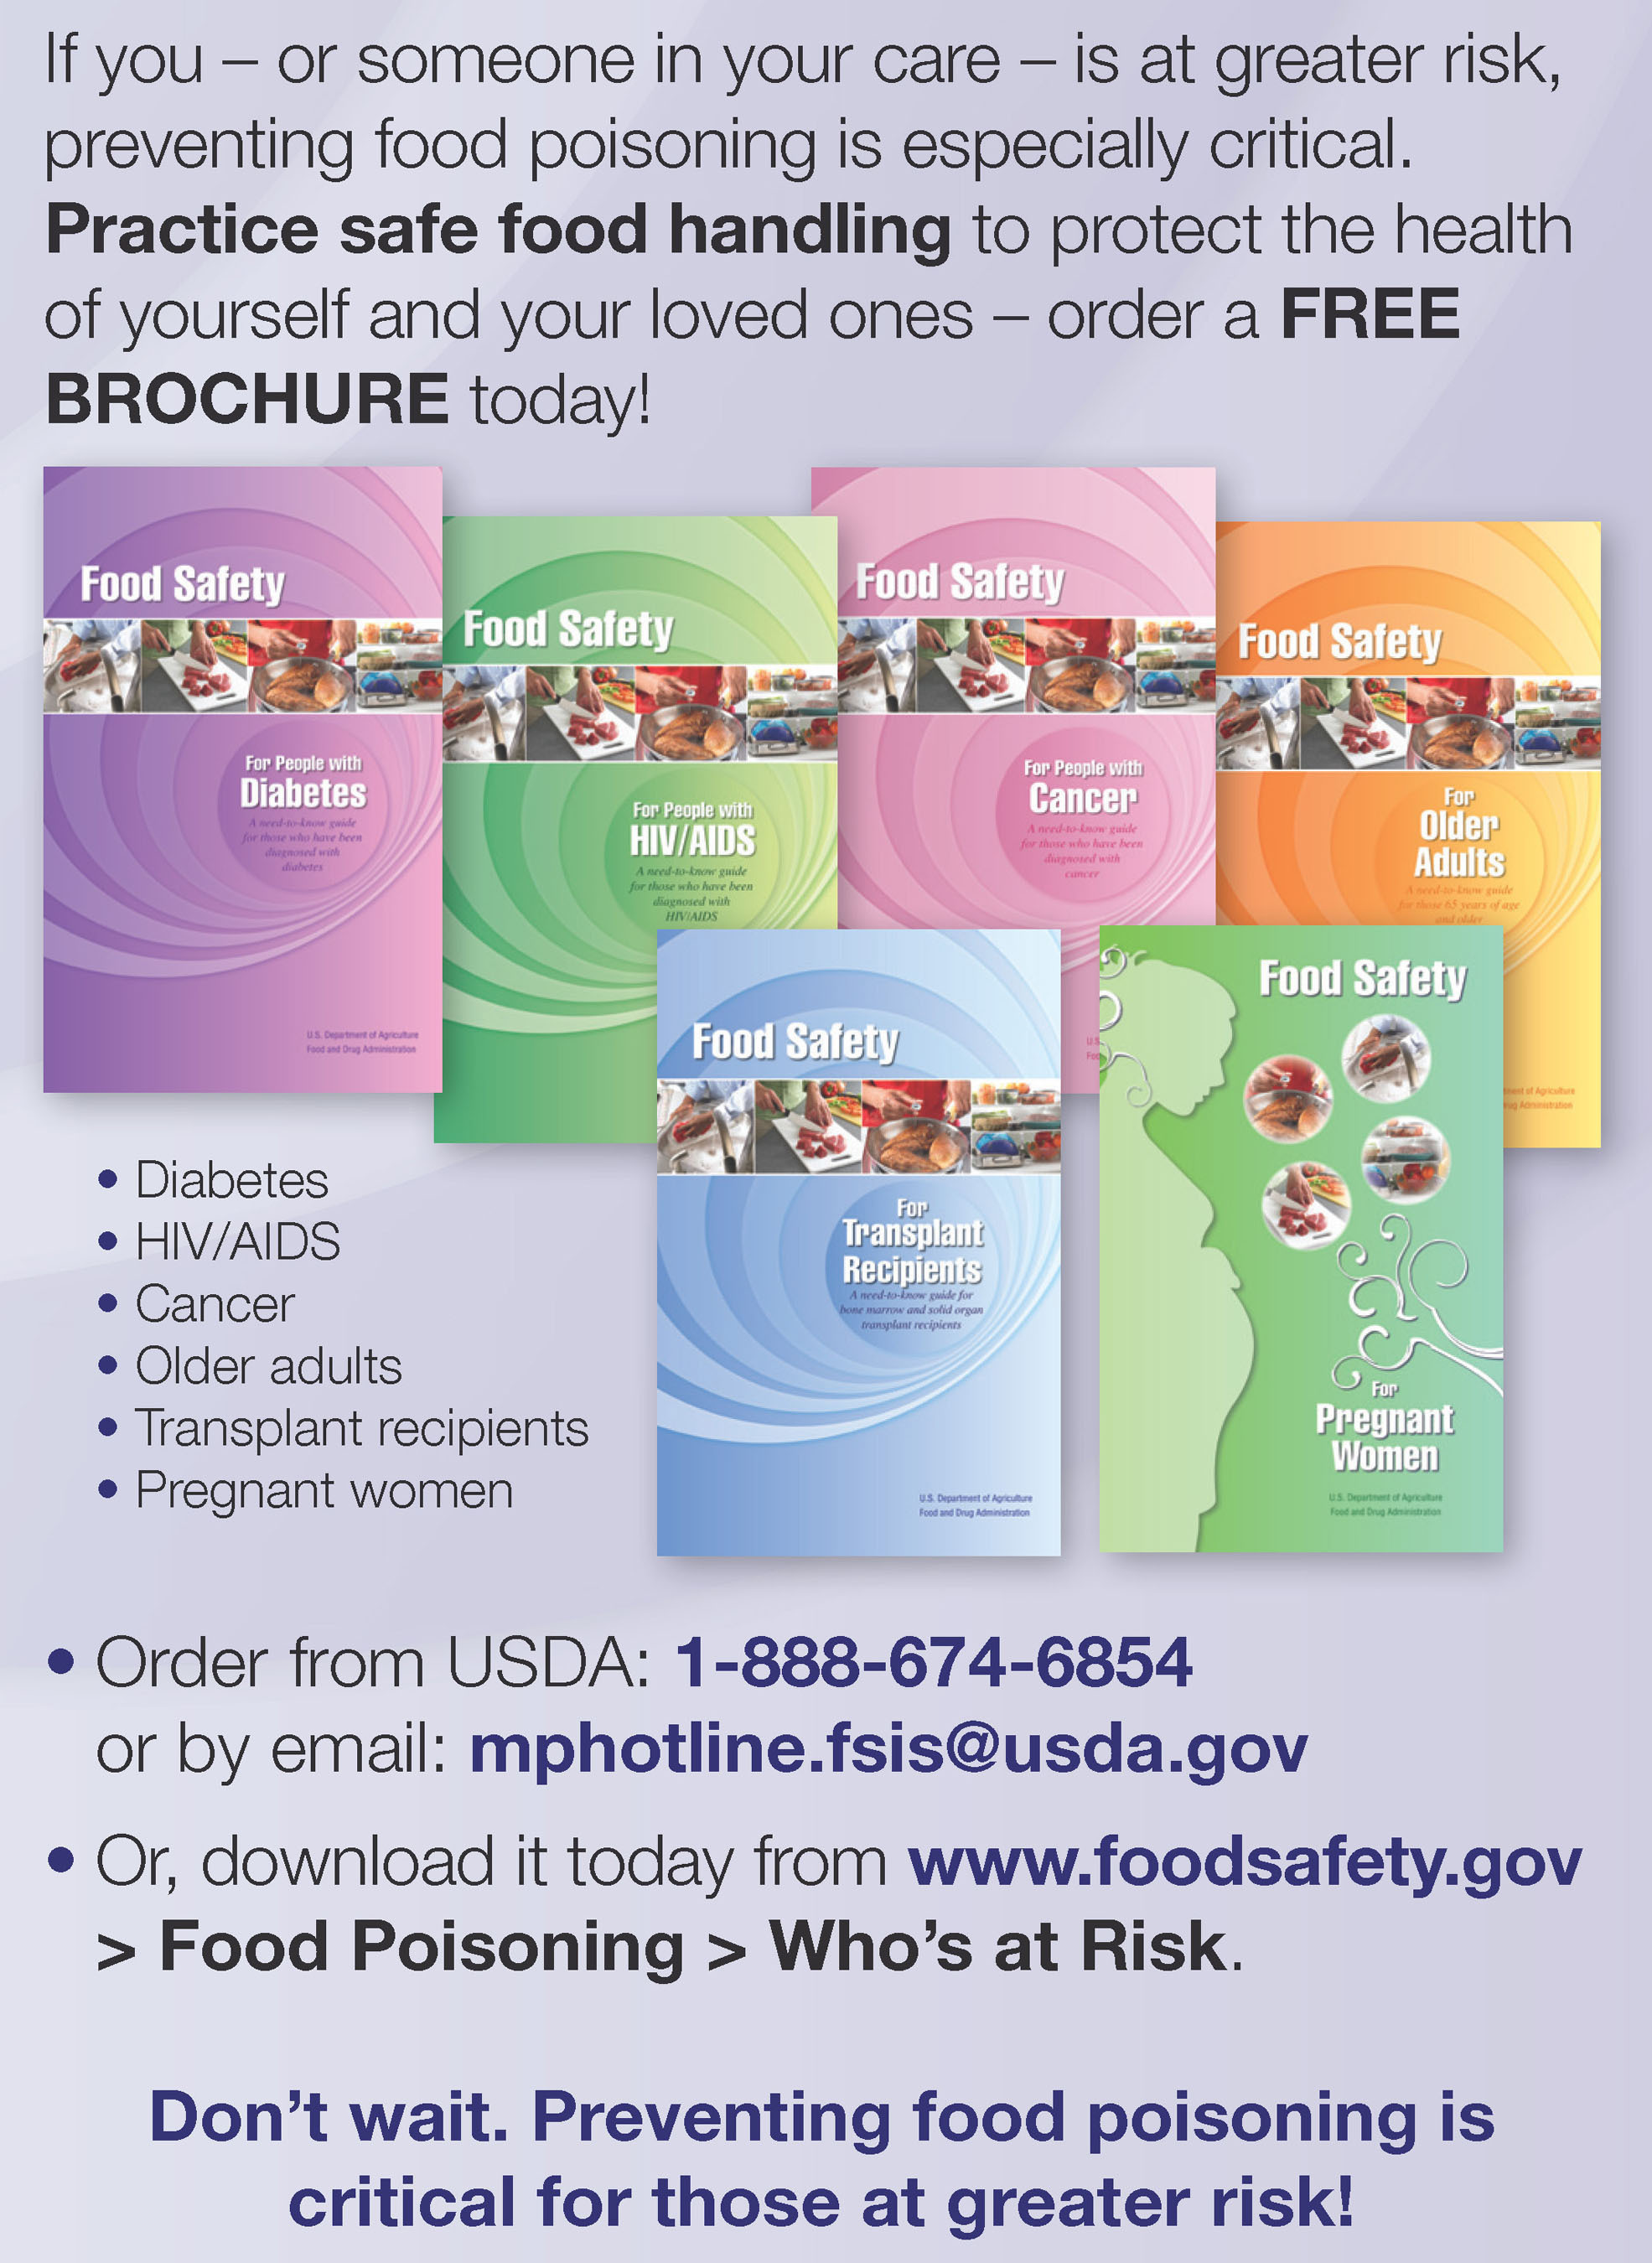 FDA and USDA announce special food safety booklets for vulnerable people.  (PRNewsFoto/U.S. Food and Drug Administration)